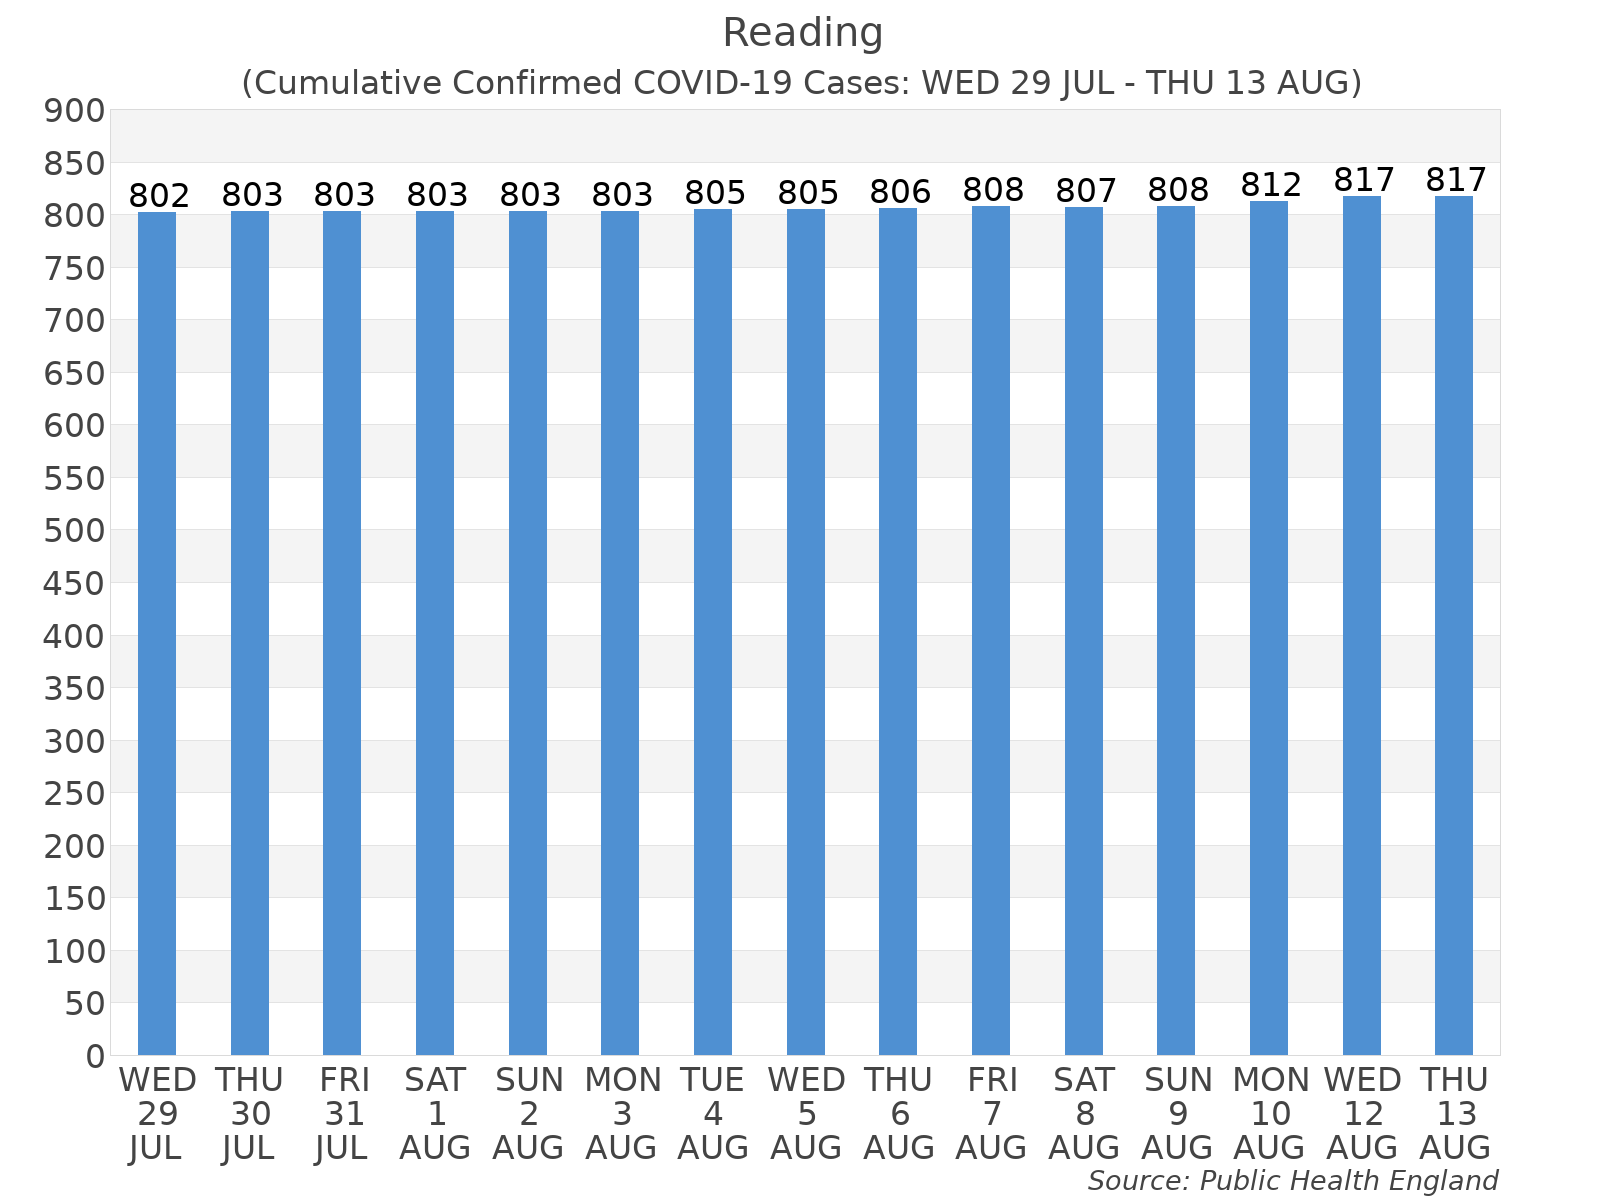 Graph tracking the number of confirmed coronavirus (COVID-19) cases where the patient lives within the Reading Upper Tier Local Authority Area.